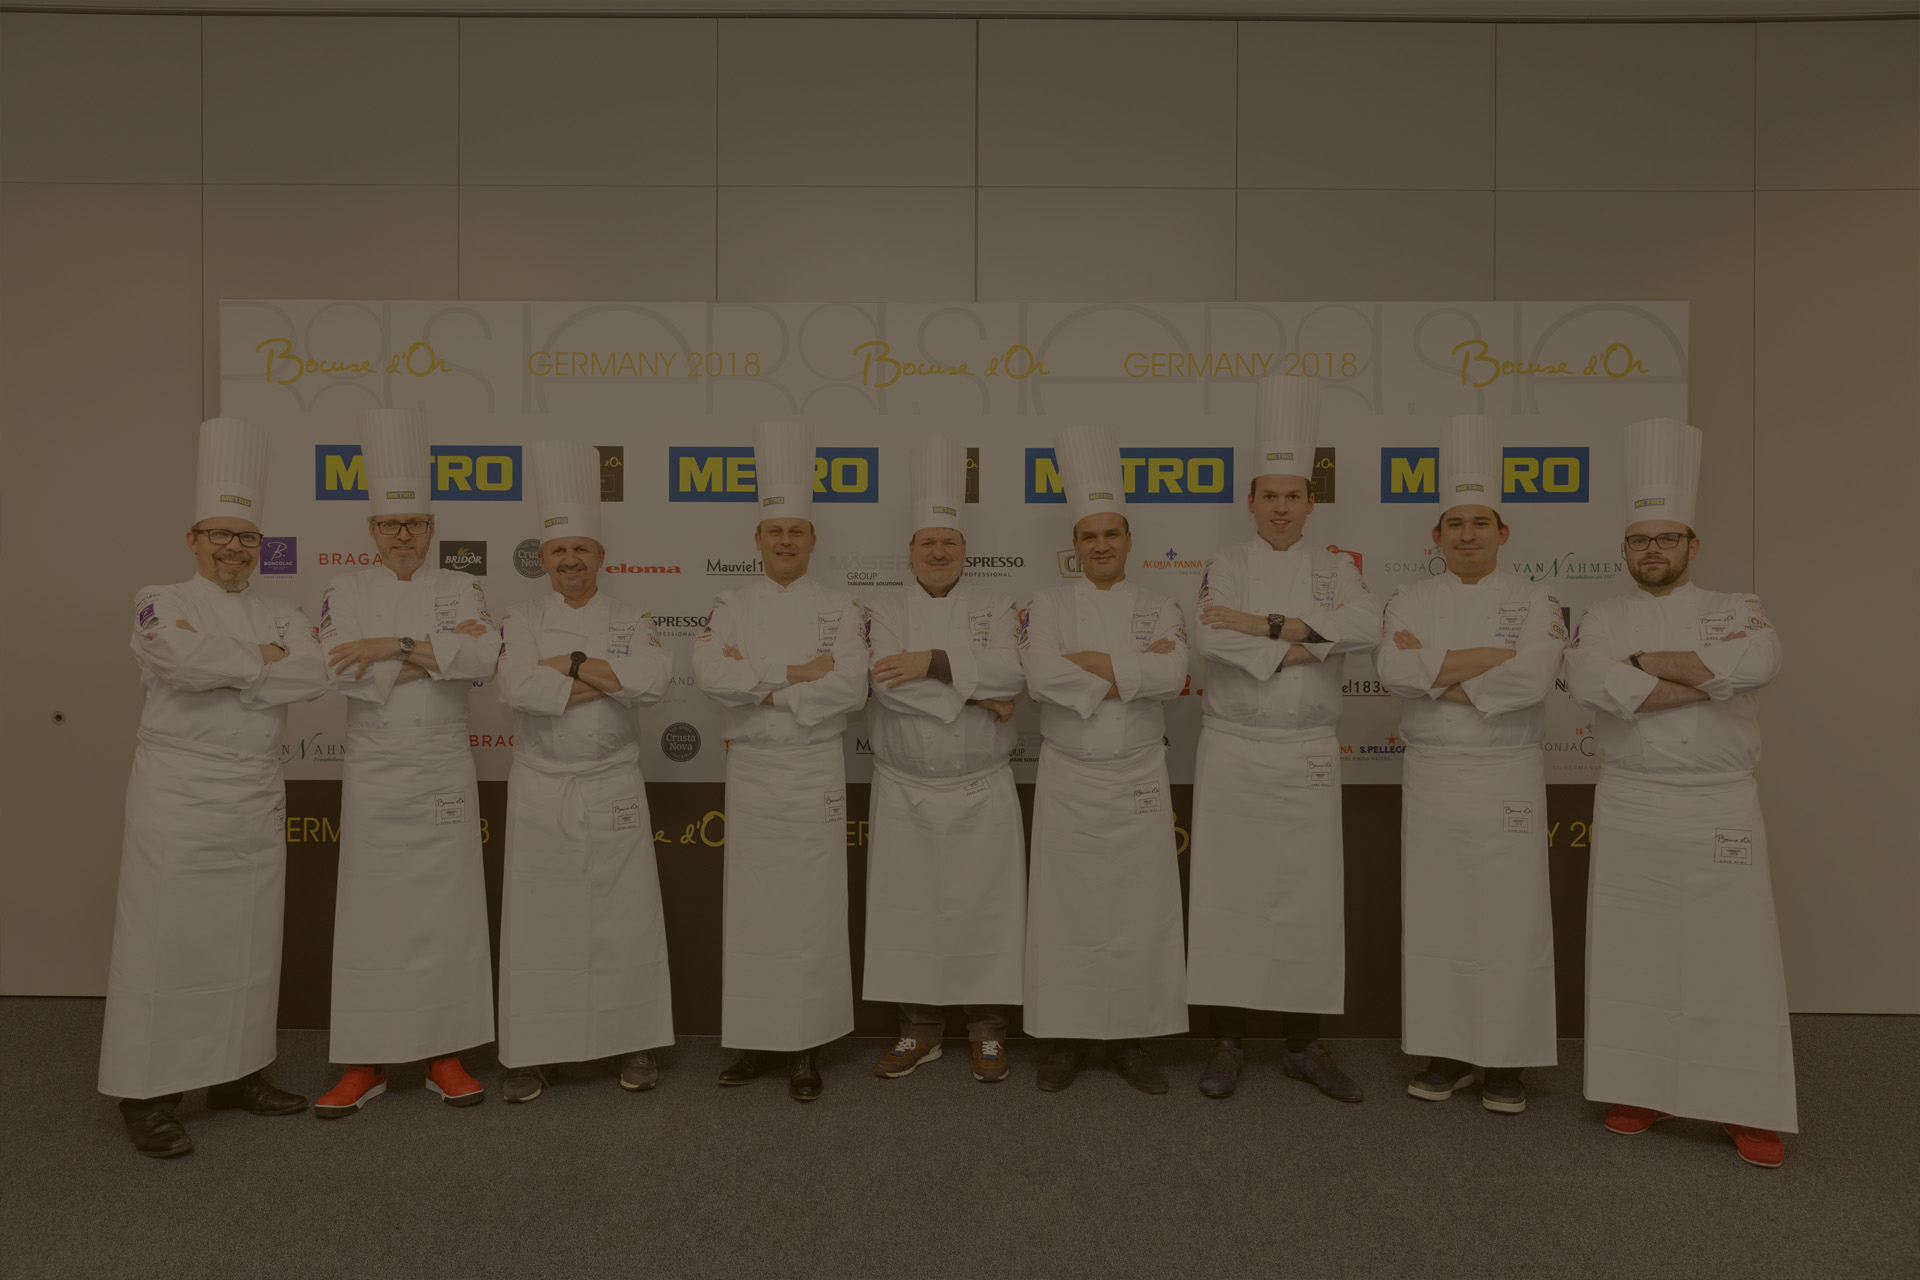 BOCUSE D'OR Germany 2018